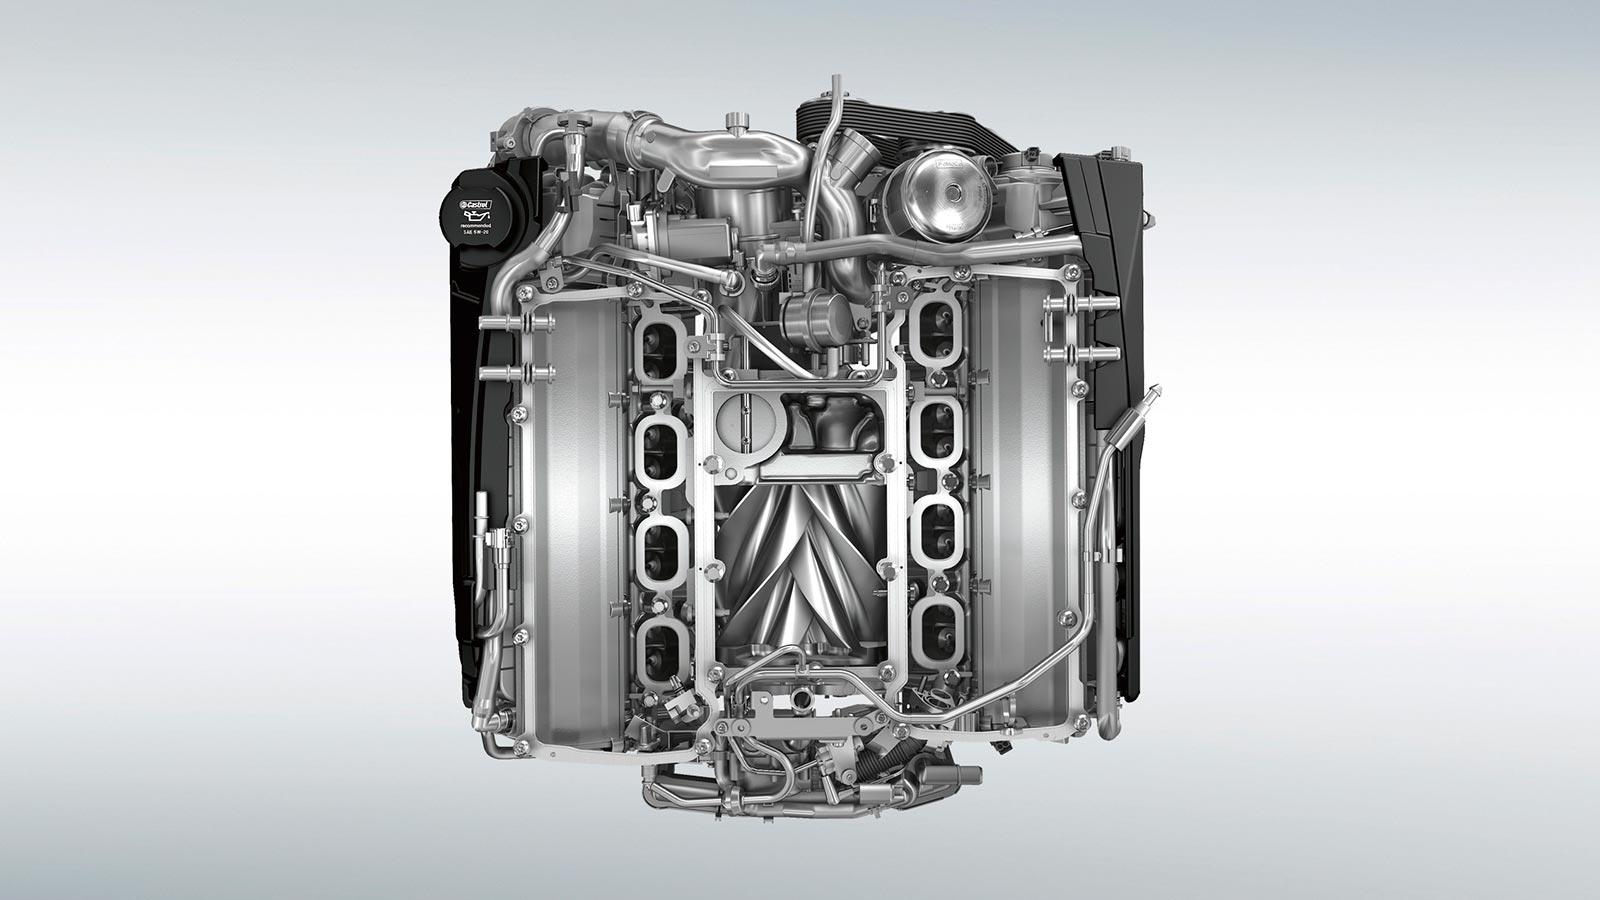 5.0-Liter V8 Supercharged Gasoline Engine